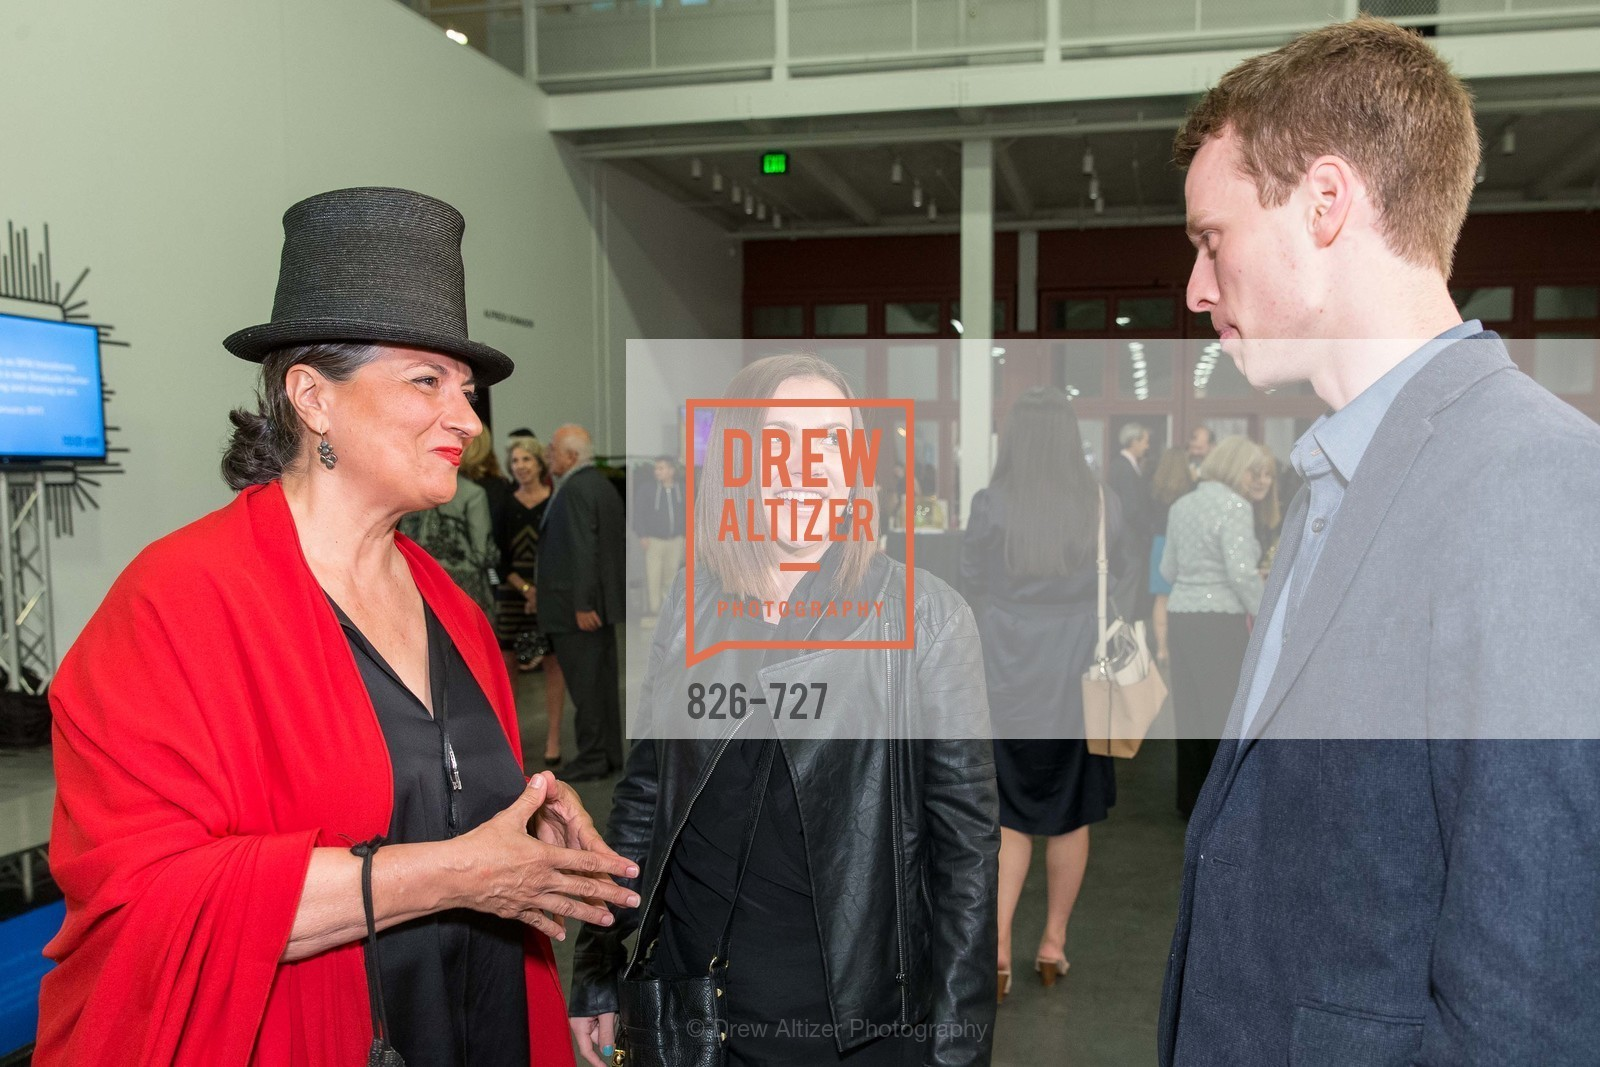 Marta Salas-Porras, SAN FRANCISCO ART INSTITUTE Gala Honoring Art Visionary and Advocate ROSELYNE CHROMAN SWIG, US, May 14th, 2015,Drew Altizer, Drew Altizer Photography, full-service agency, private events, San Francisco photographer, photographer california